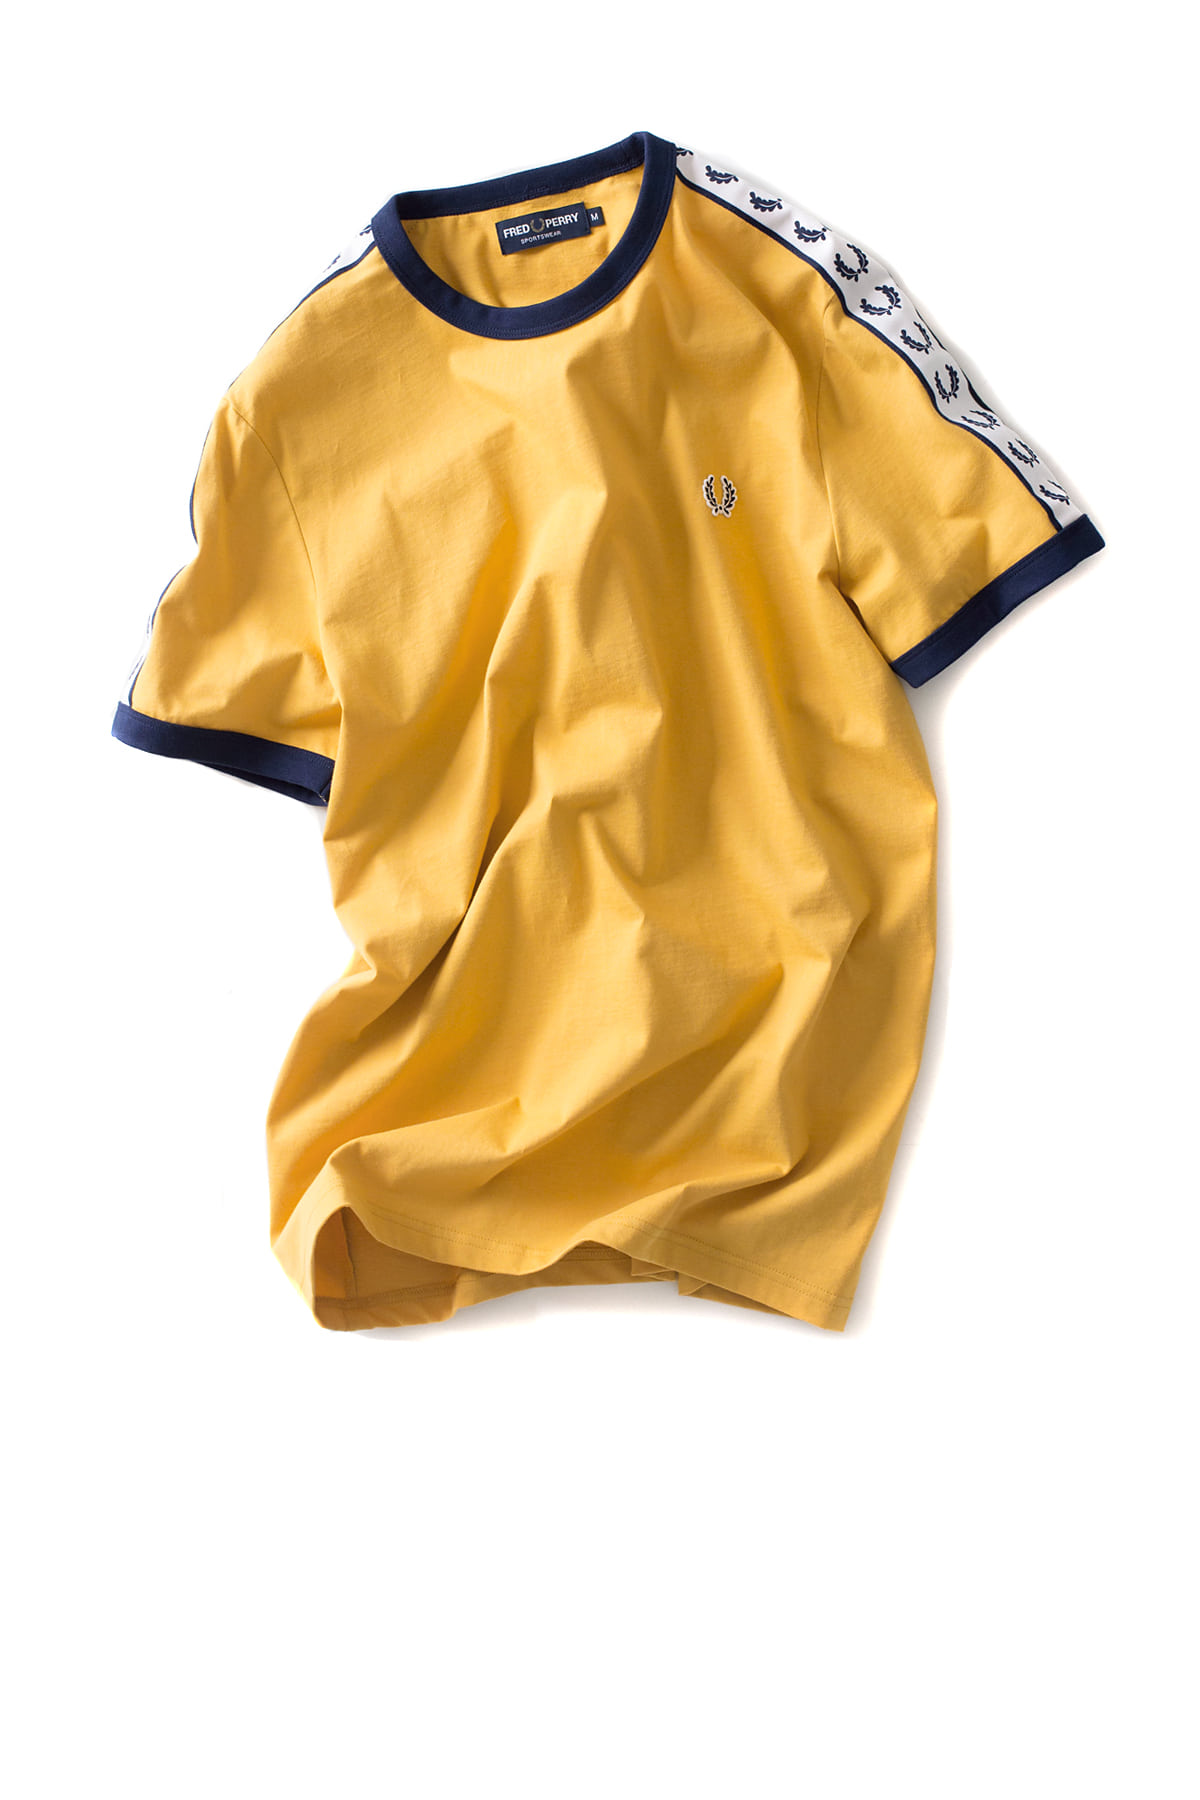 FRED PERRY : Taped Ringer T-Shirt (Gold)